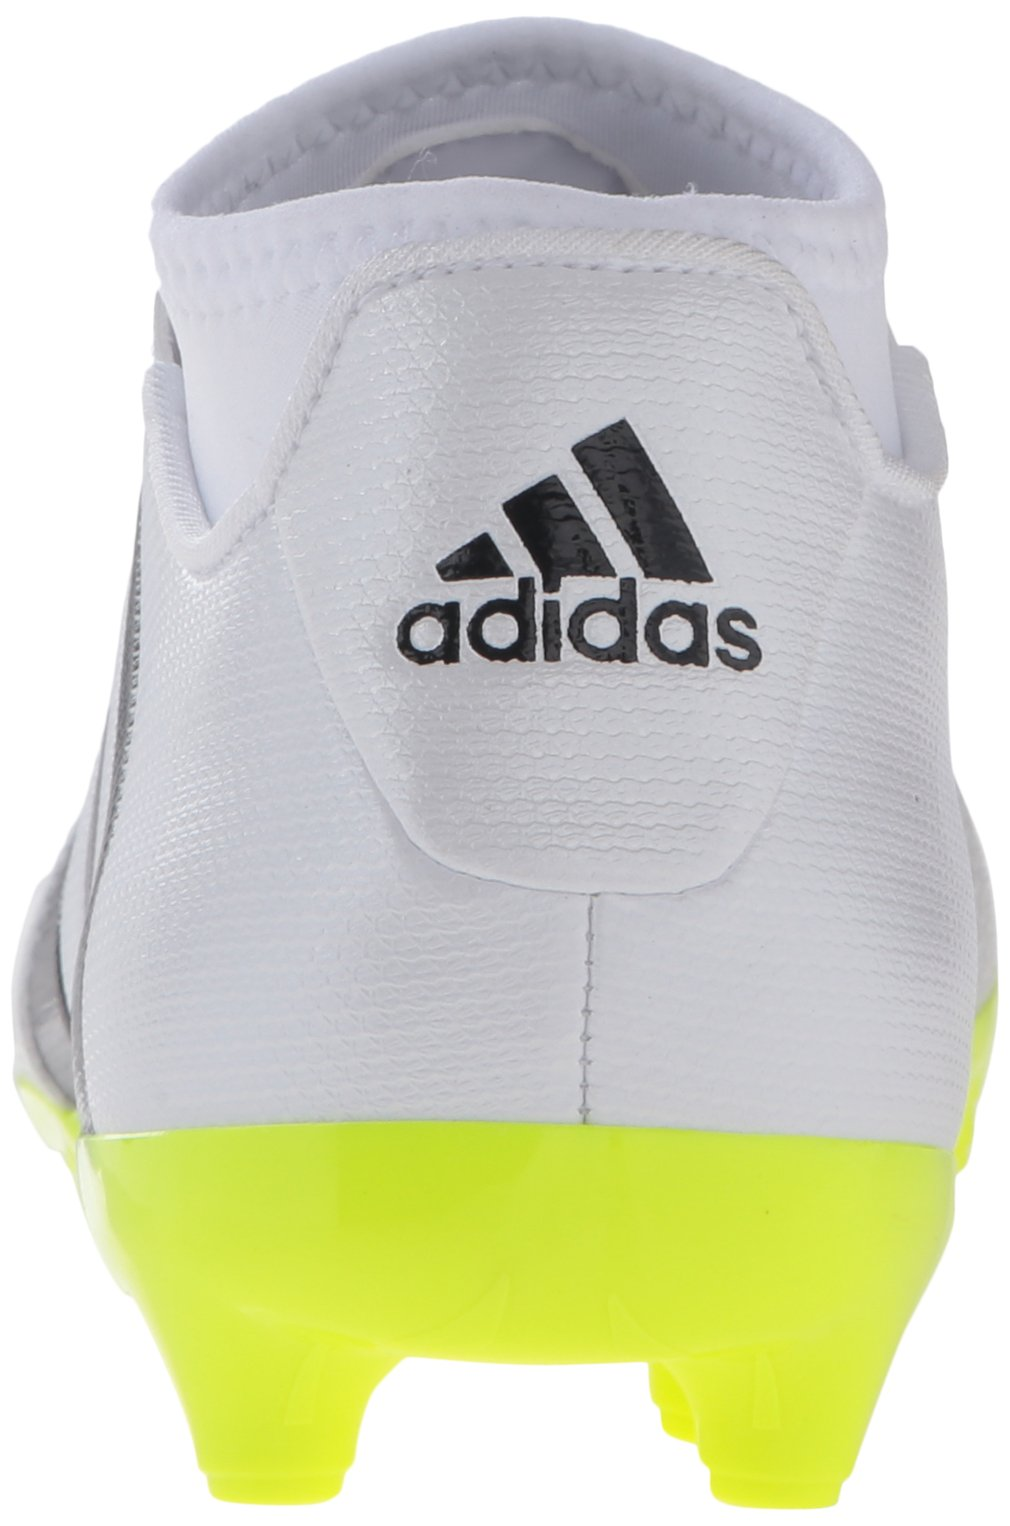 adidas Women's Ace 16.3 Primemesh FG/AG W Soccer Shoe, White/Black/Electricity, 9 M US by adidas (Image #2)